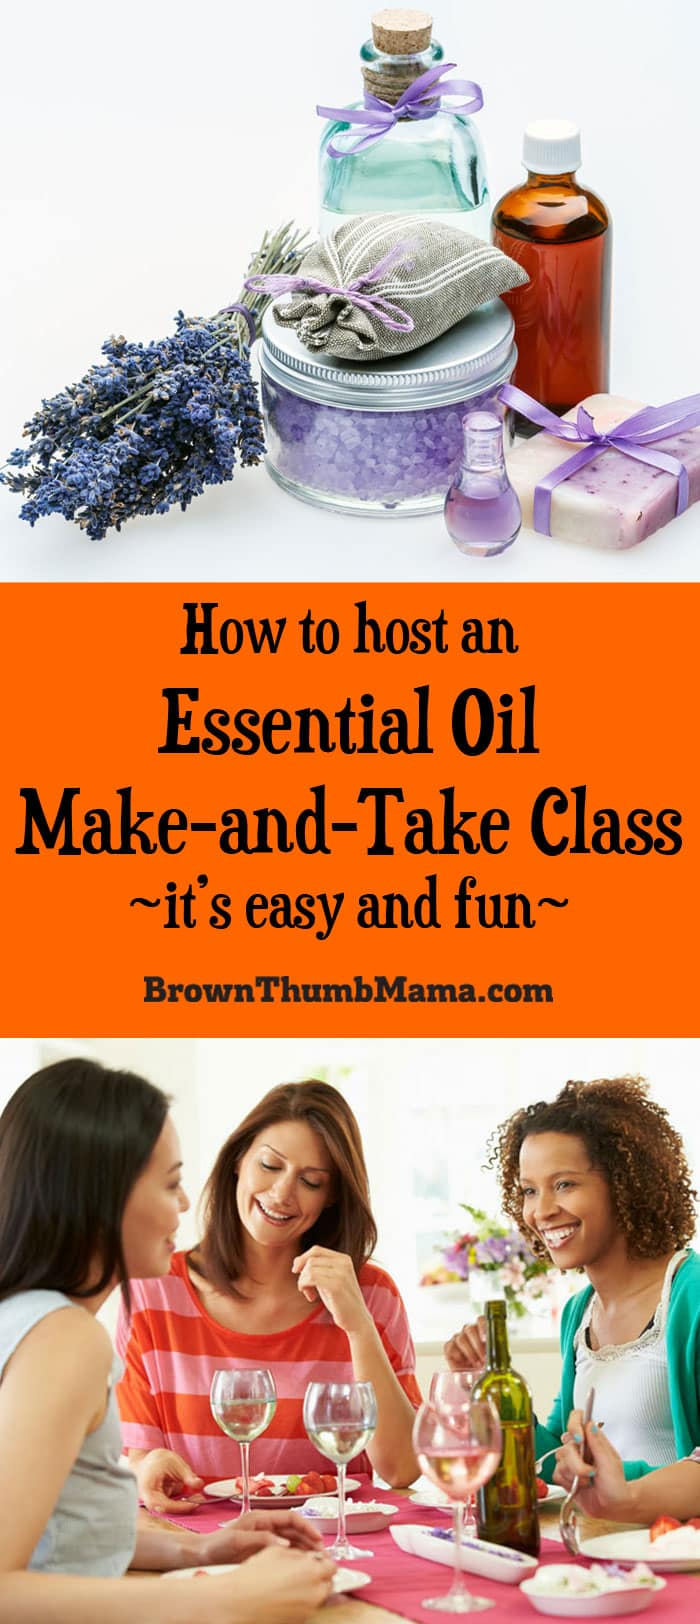 Essential oil make and take classes are a fun way to introduce your friends, family, and team members to all the things they can do with their oils. Here's everything you need to know to host an essential oil make and take class.